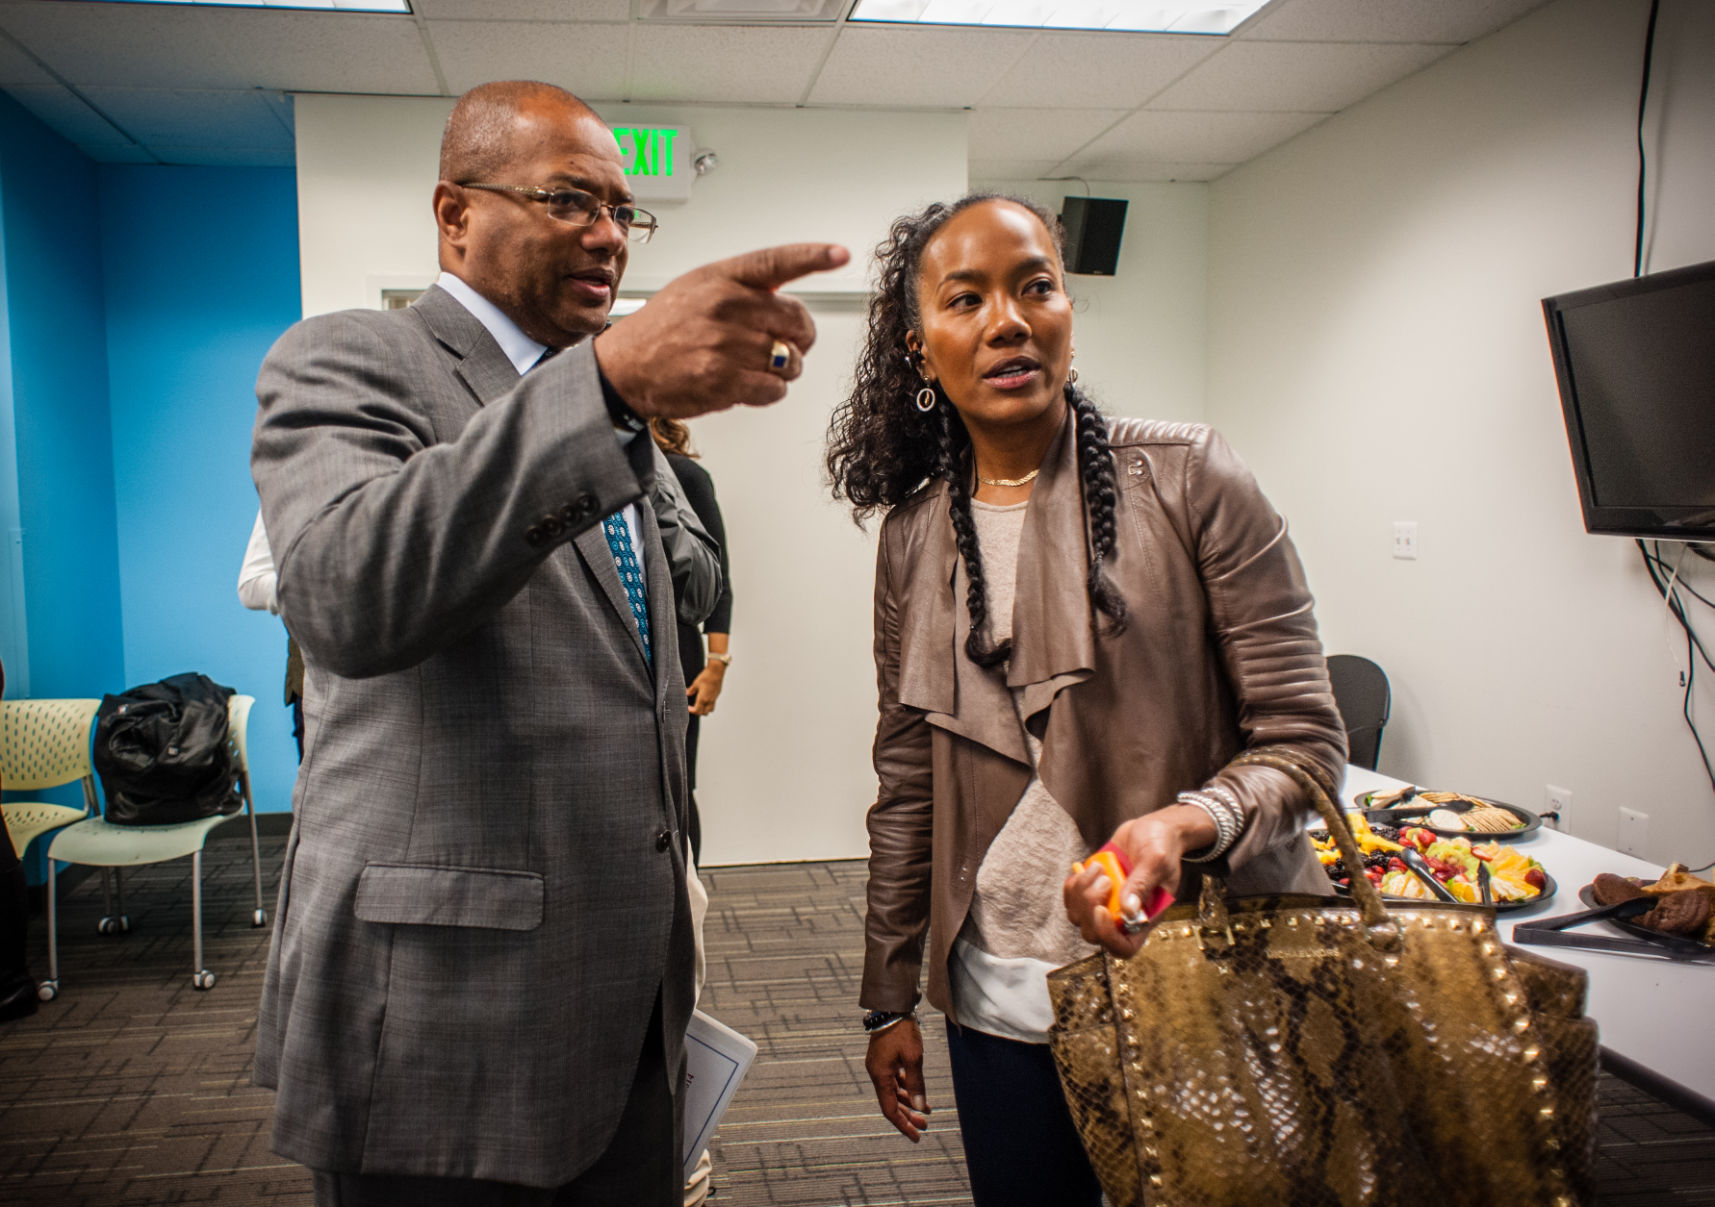 """<p>BALTIMORE, MD — 11/10/15 — Broderick Johnson meets actress and producer Sonja Sohn at the Center for Urban Families in Baltimore. Broderick Johnson is Chair of the My Brother's Keeper Task Force. MBK is President Obama's initiative to expand opportunity for young men of color</p> <p>""""><figcaption class="""